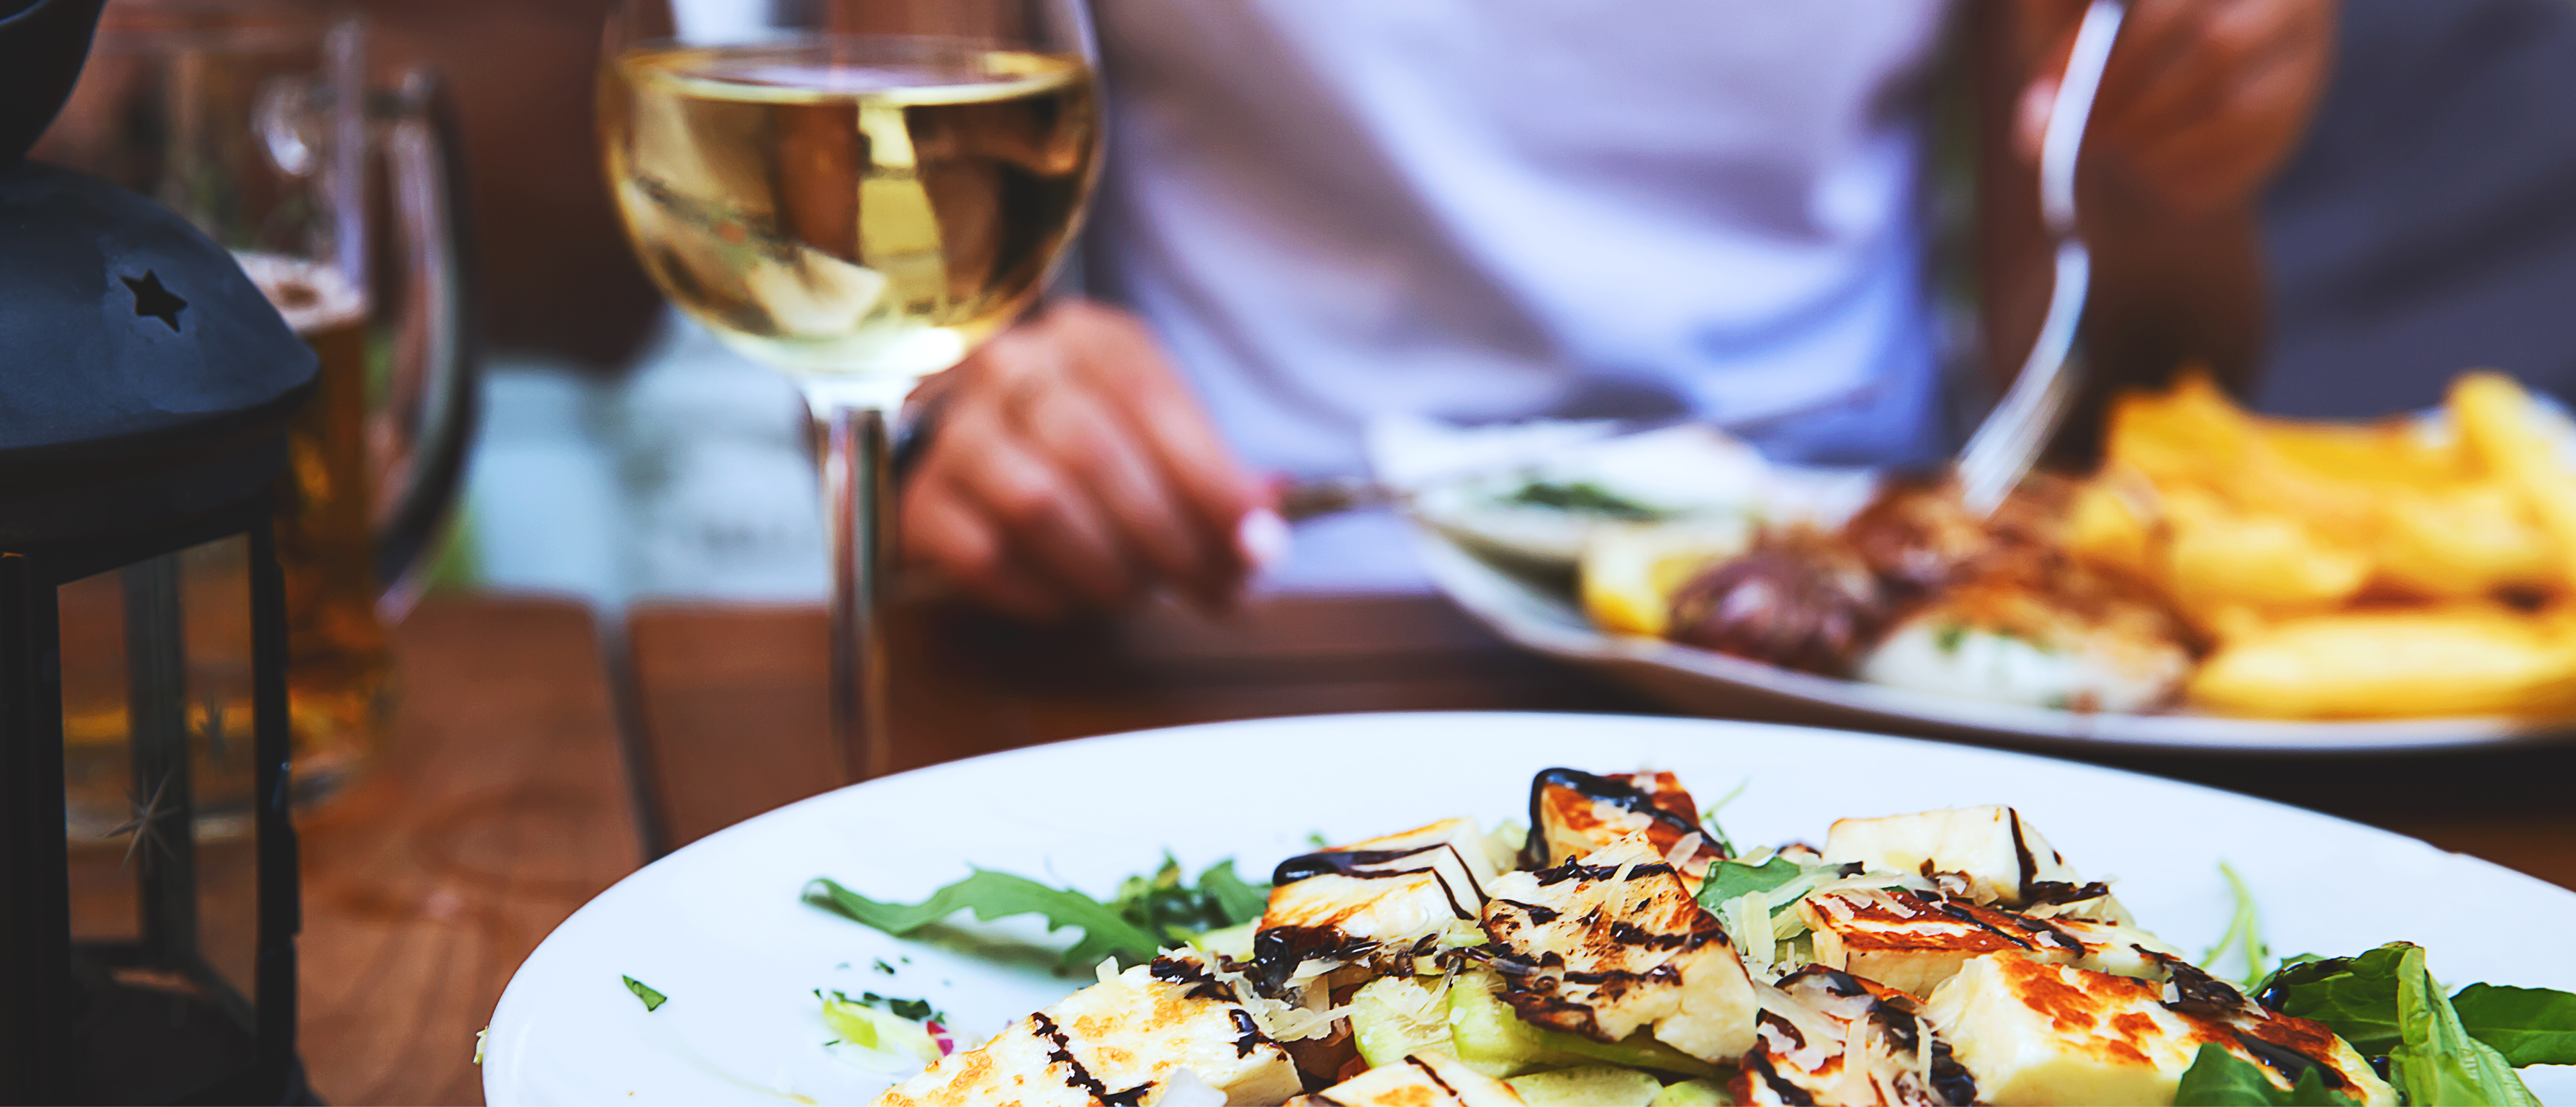 Bar and Grill - chicken salad and wine